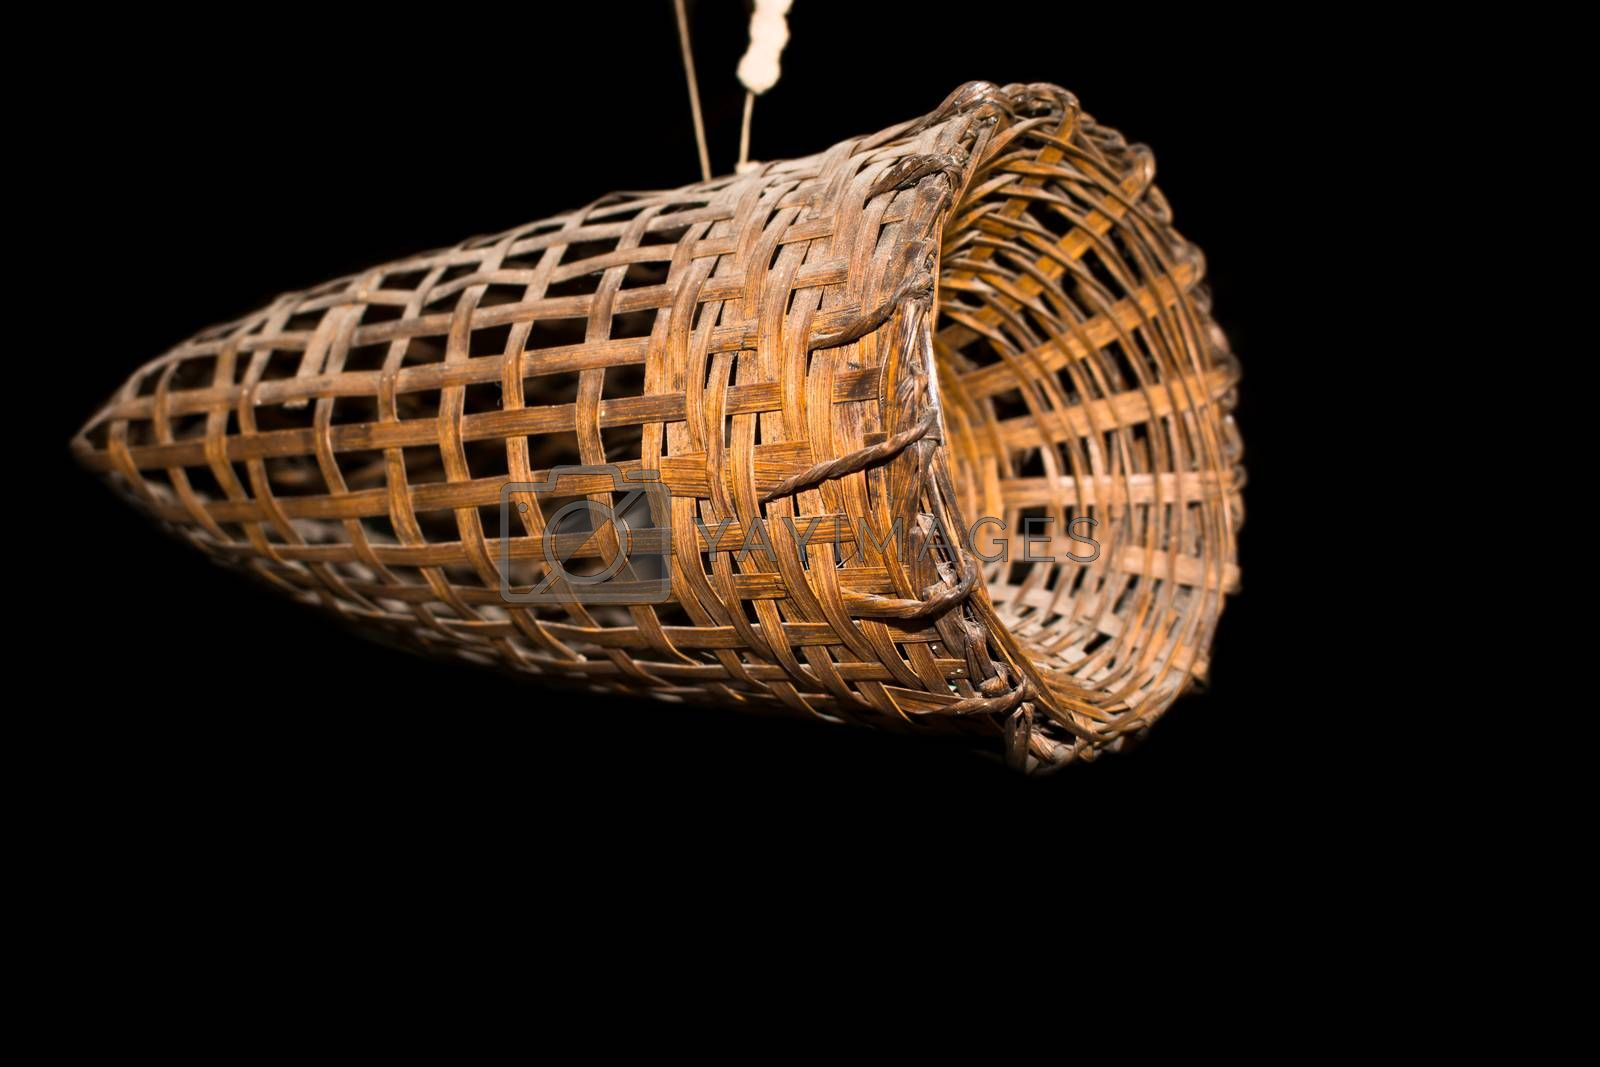 Frog trap, made of bamboo basket